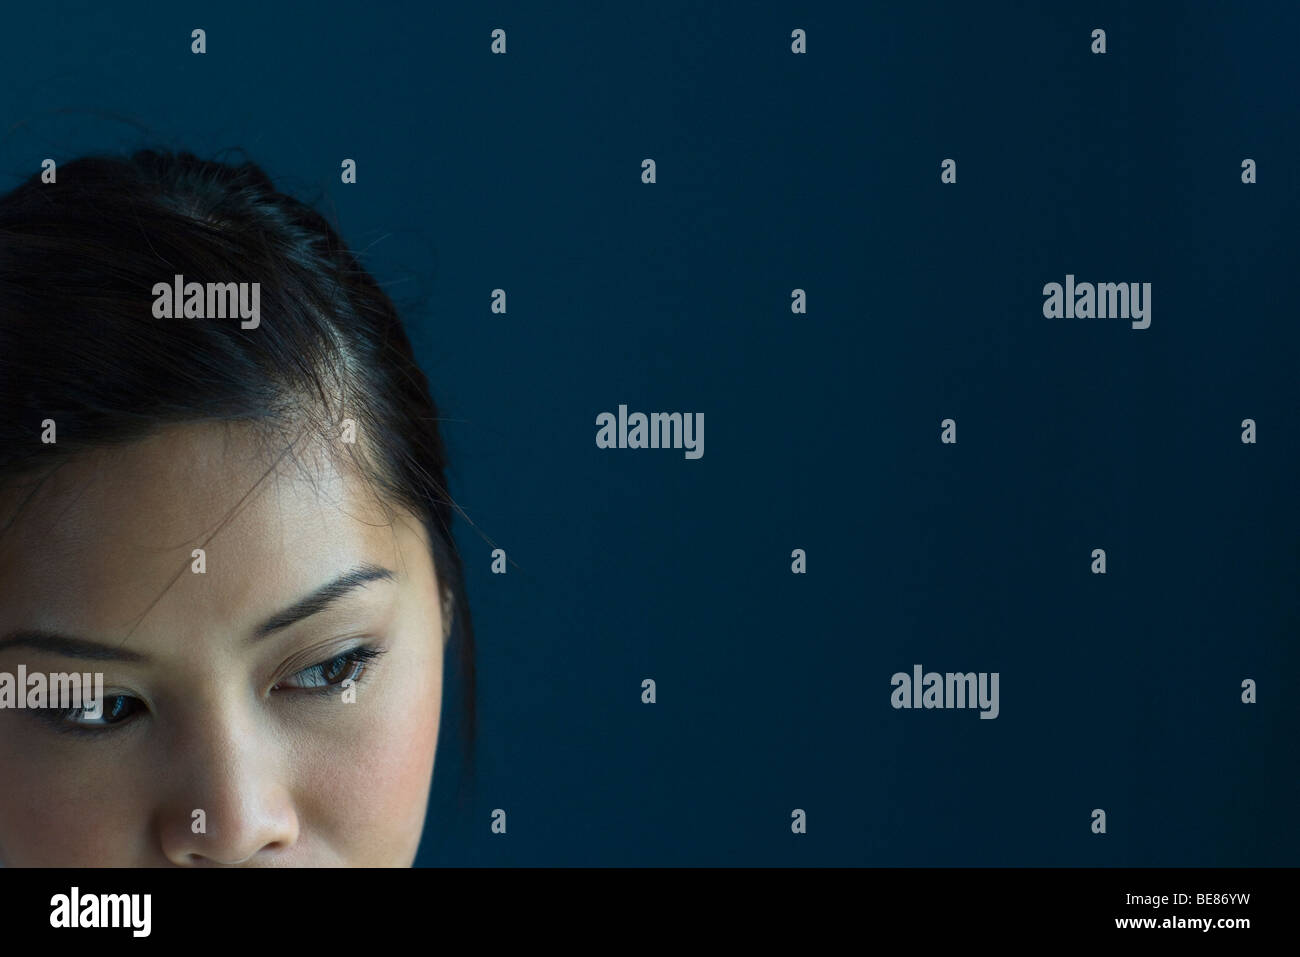 Woman looking away with sideways glance, cropped - Stock Image